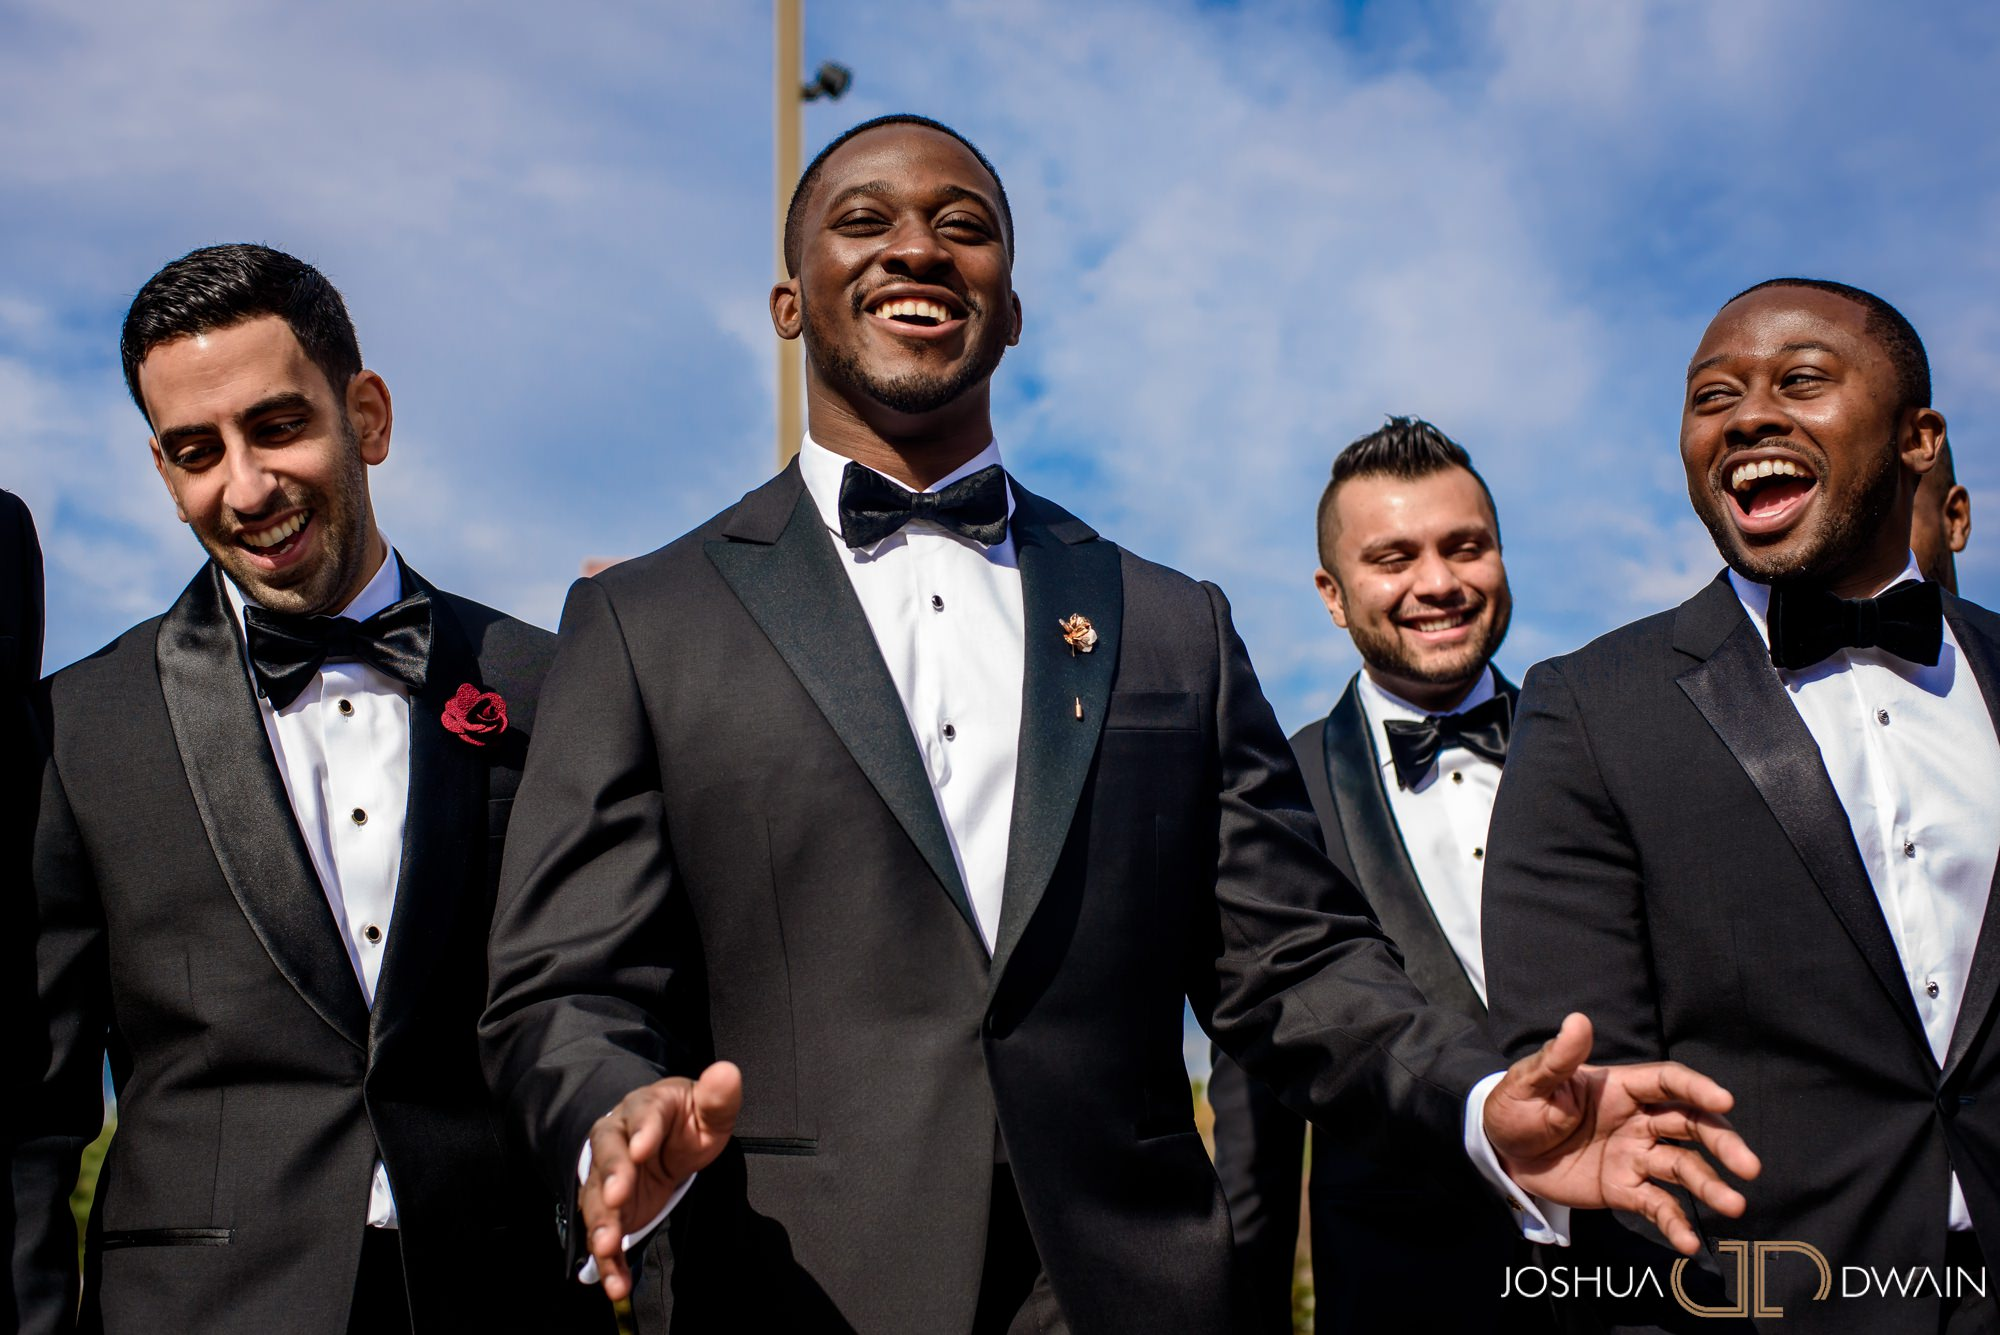 stephanie-richard-09-westmount-country-club-joshua-dwain-nj-wedding-photography